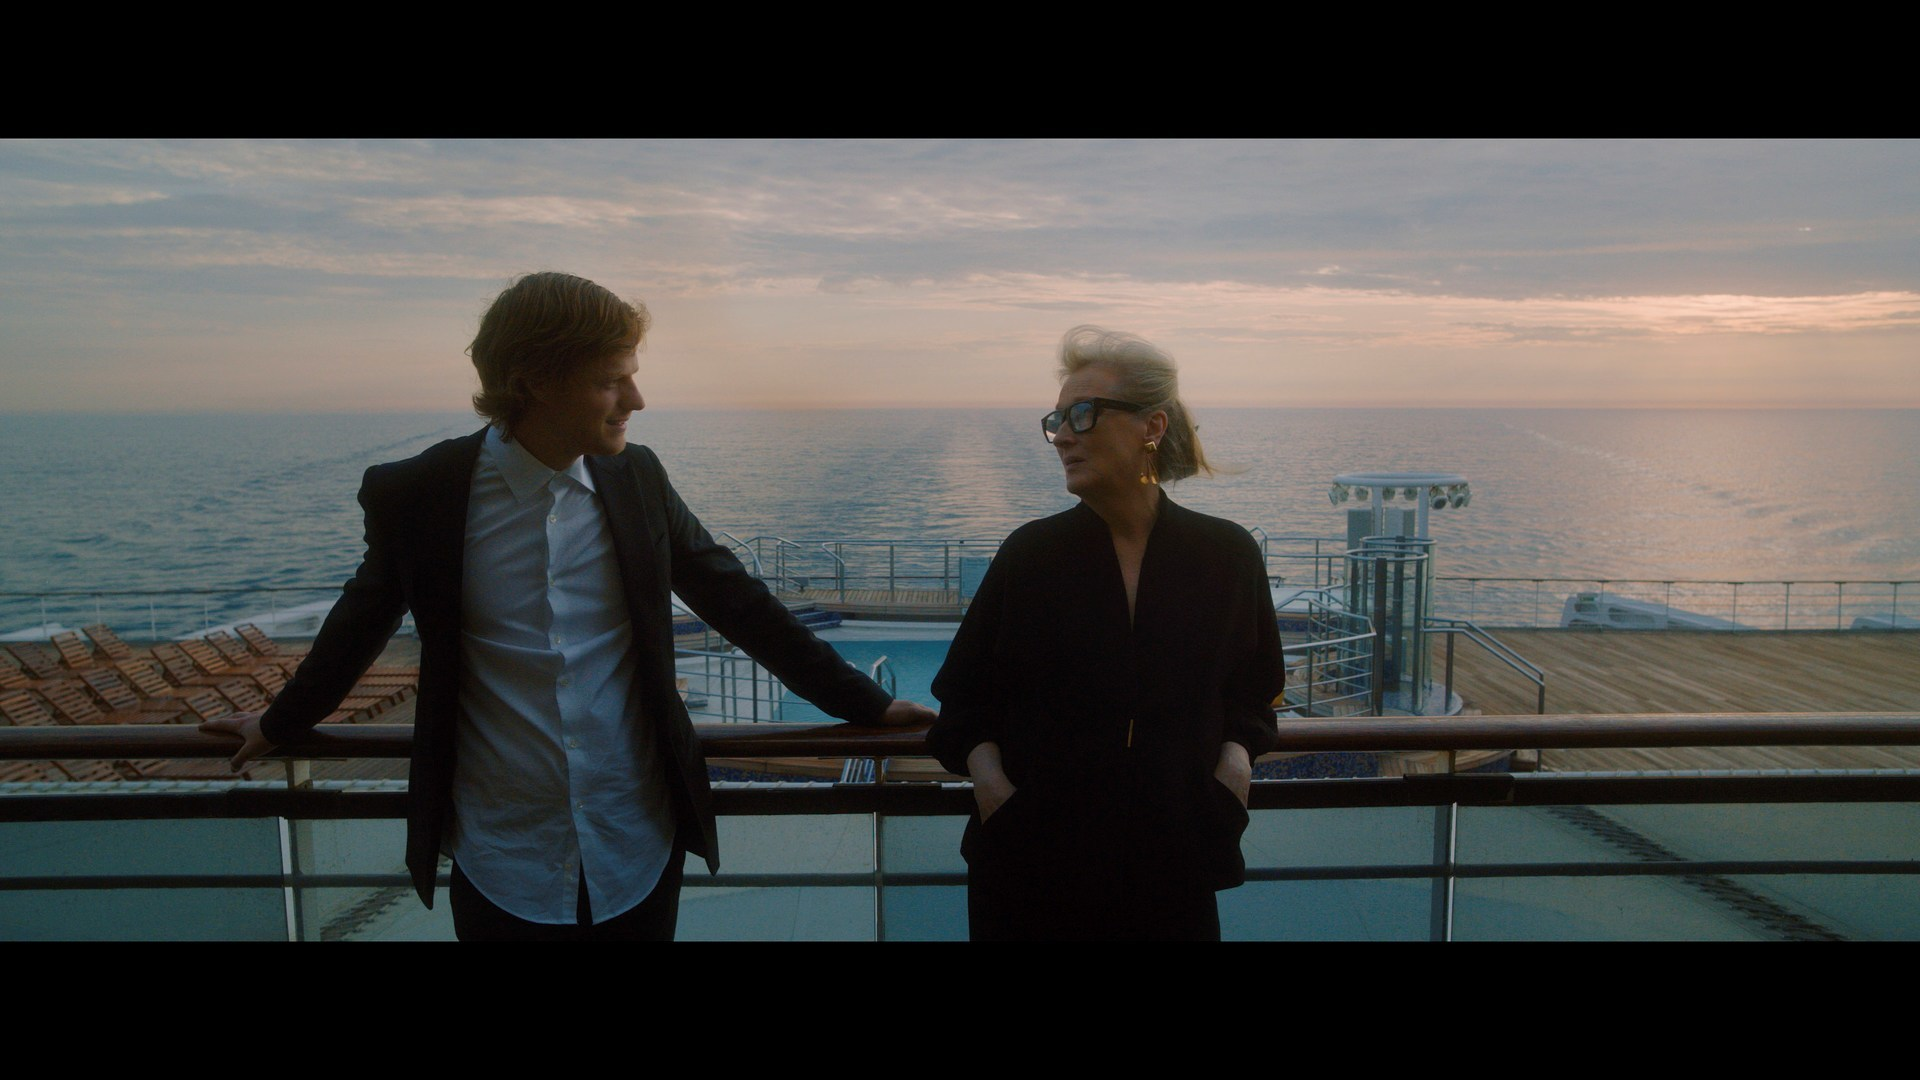 """Academy Award® winner Meryl Streep and Academy Award® nominee Lucas Hedges star in the HBO Max production, """"Let Them All Talk,"""" filmed aboard Cunard's flagship Queen Mary 2. Set on a Transatlantic Crossing, the film was helmed by award-winning director Steven Soderbergh, which begins streaming on December 10 (December 2020)"""